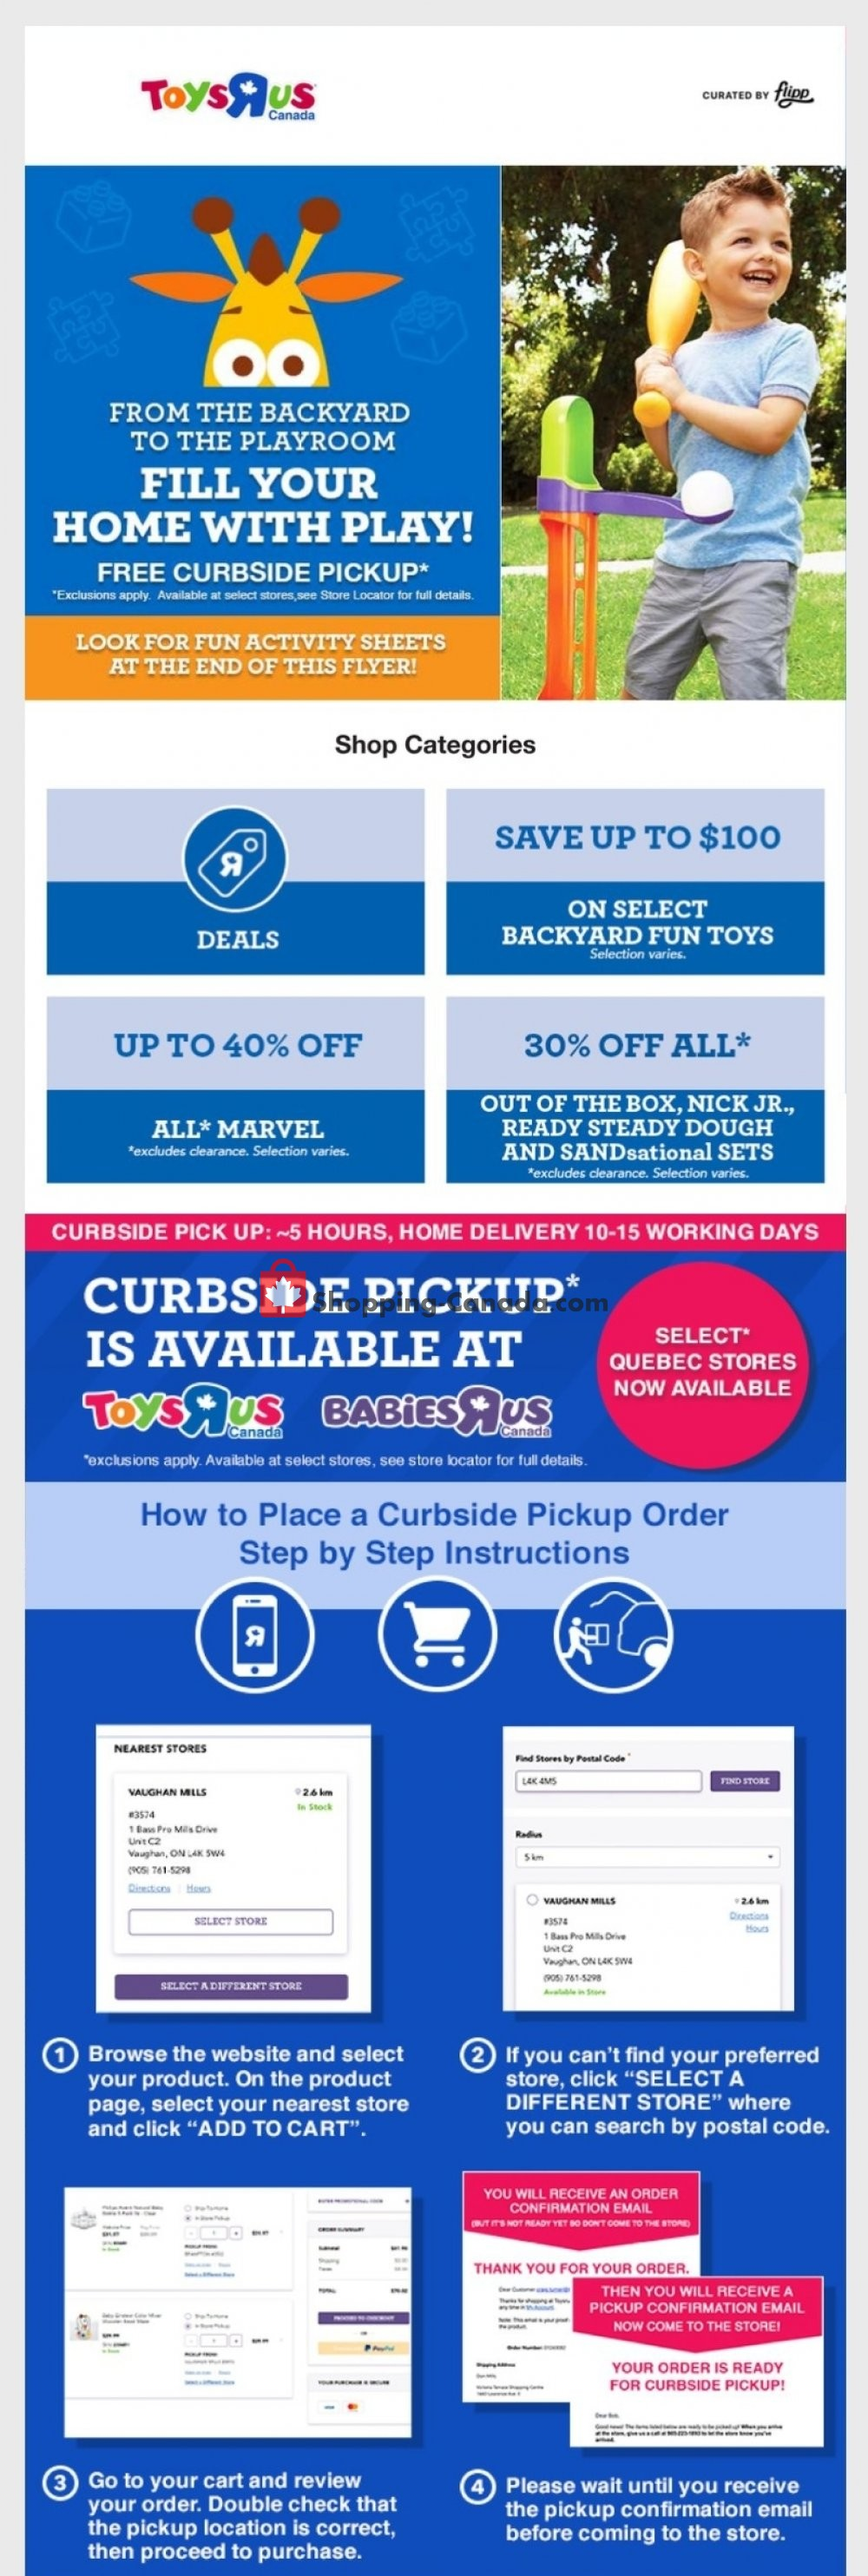 Flyer Toys R Us / Babies R Us Canada - from Thursday May 28, 2020 to Thursday June 4, 2020